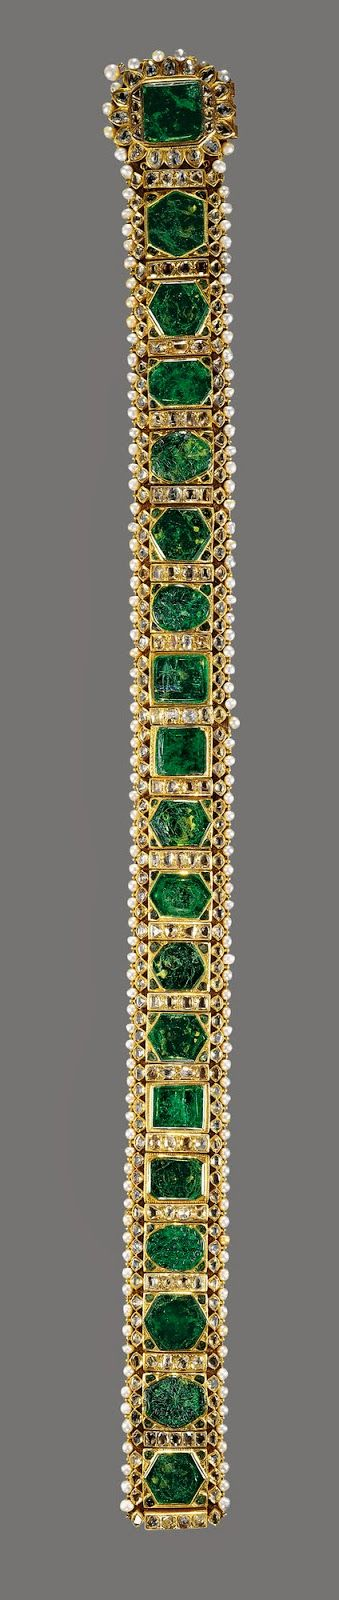 "The Lahore Emerald Girdle, c. 1840.  The emeralds in this exquisite piece were inherited by India's Maharajah Sher Singh from Ranjit Singh, his father known as the ""Lion of the Punjab.""  ""The Lion,"" it is said, had used the emeralds to decorate his horse harnesses.  The maharajah had the emeralds made into this exceptional girdle circa 1840.  Nine years later, the Directors of the East India Company obtained the belt and presented it to Queen Victoria in 1851."